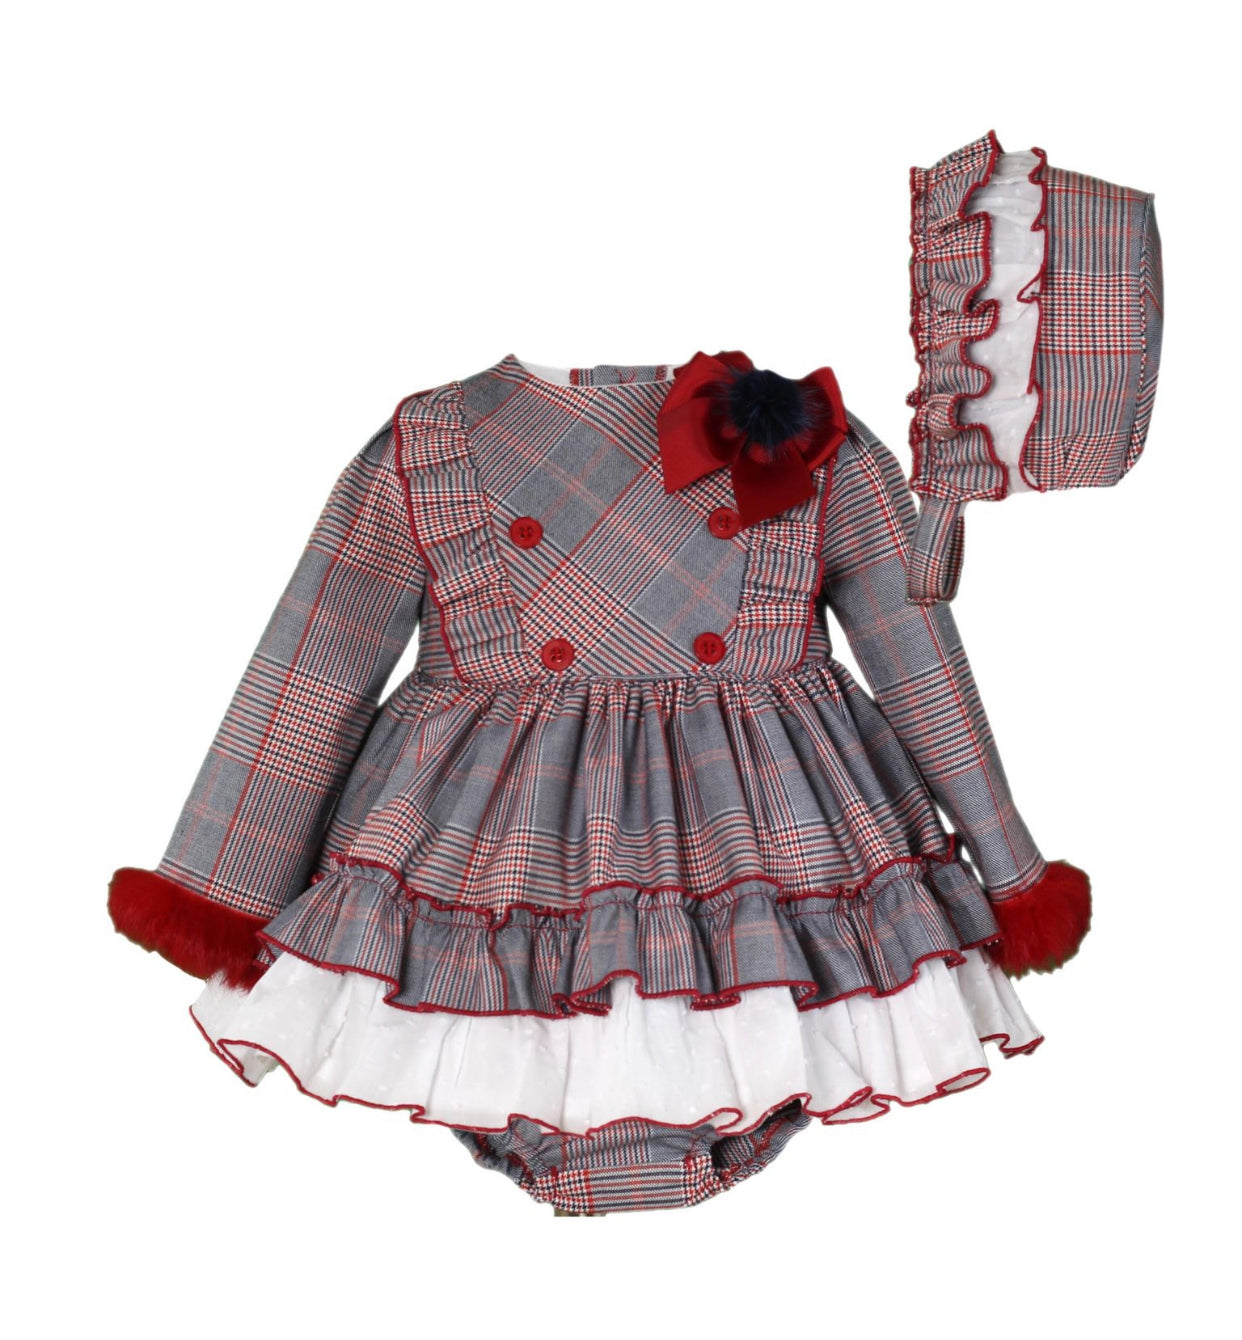 Miranda Grey/Red check Dress 3 piece set(dress,bloomers,bonnet)